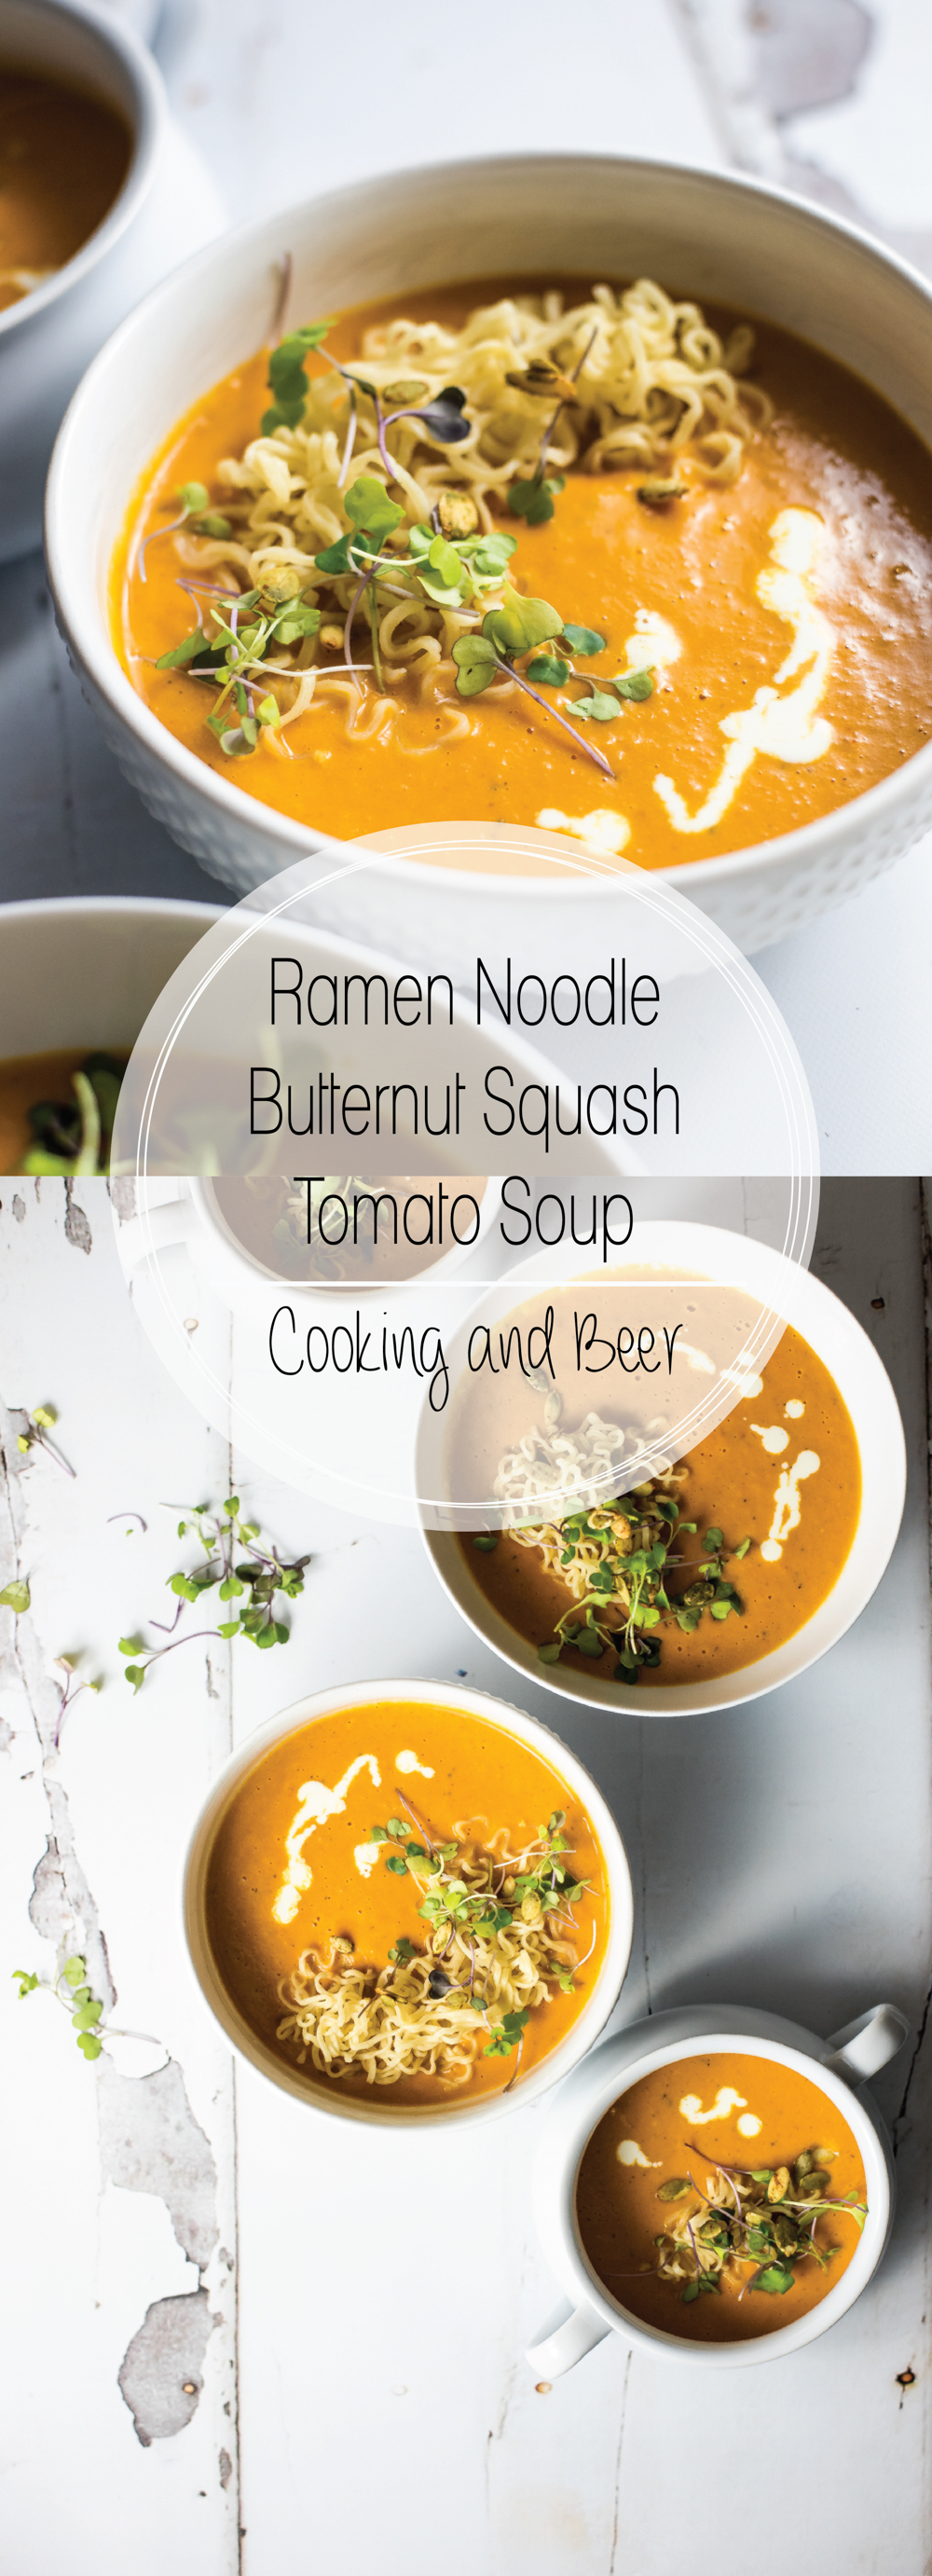 Ramen noodle butternut squash tomato soup is the perfect comforting fall soup. Is exploding with flavor and will warm you right up!